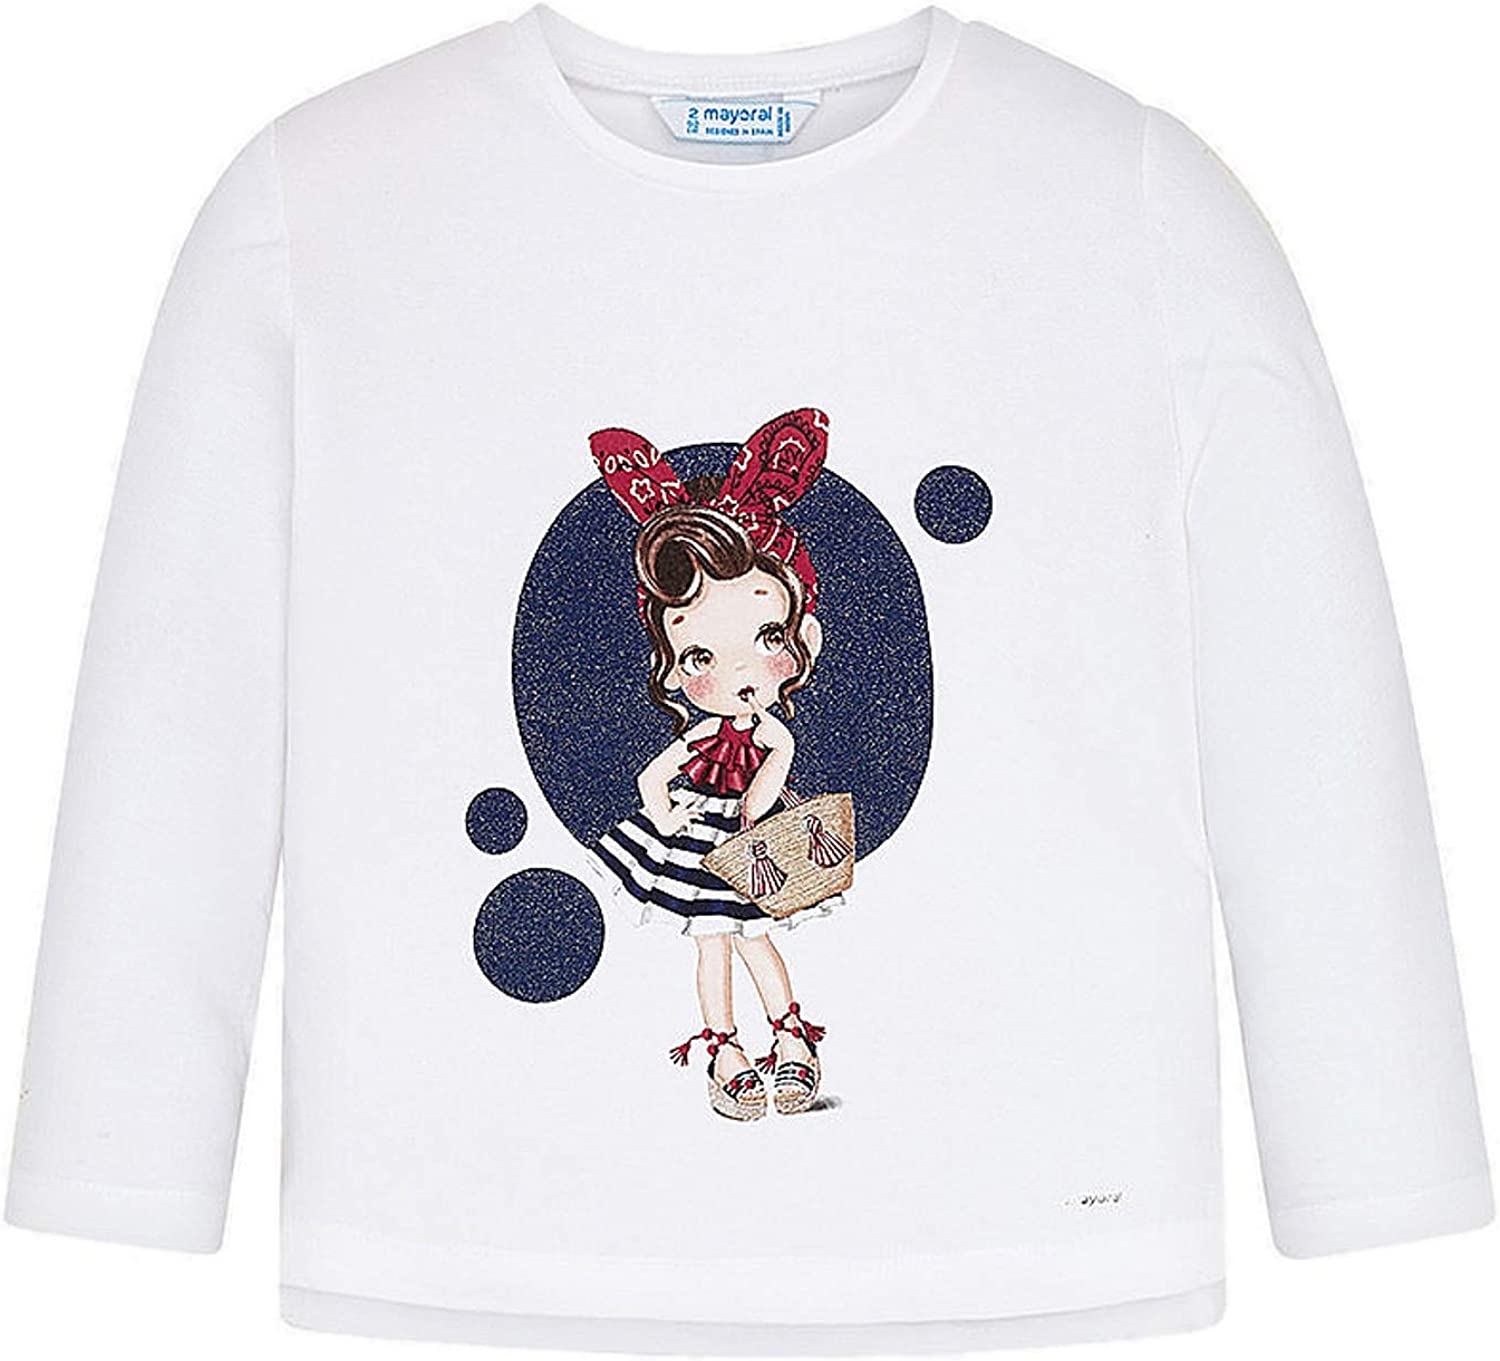 Mayoral - L/s Shirt for Girls - 3021, Whit-Navy